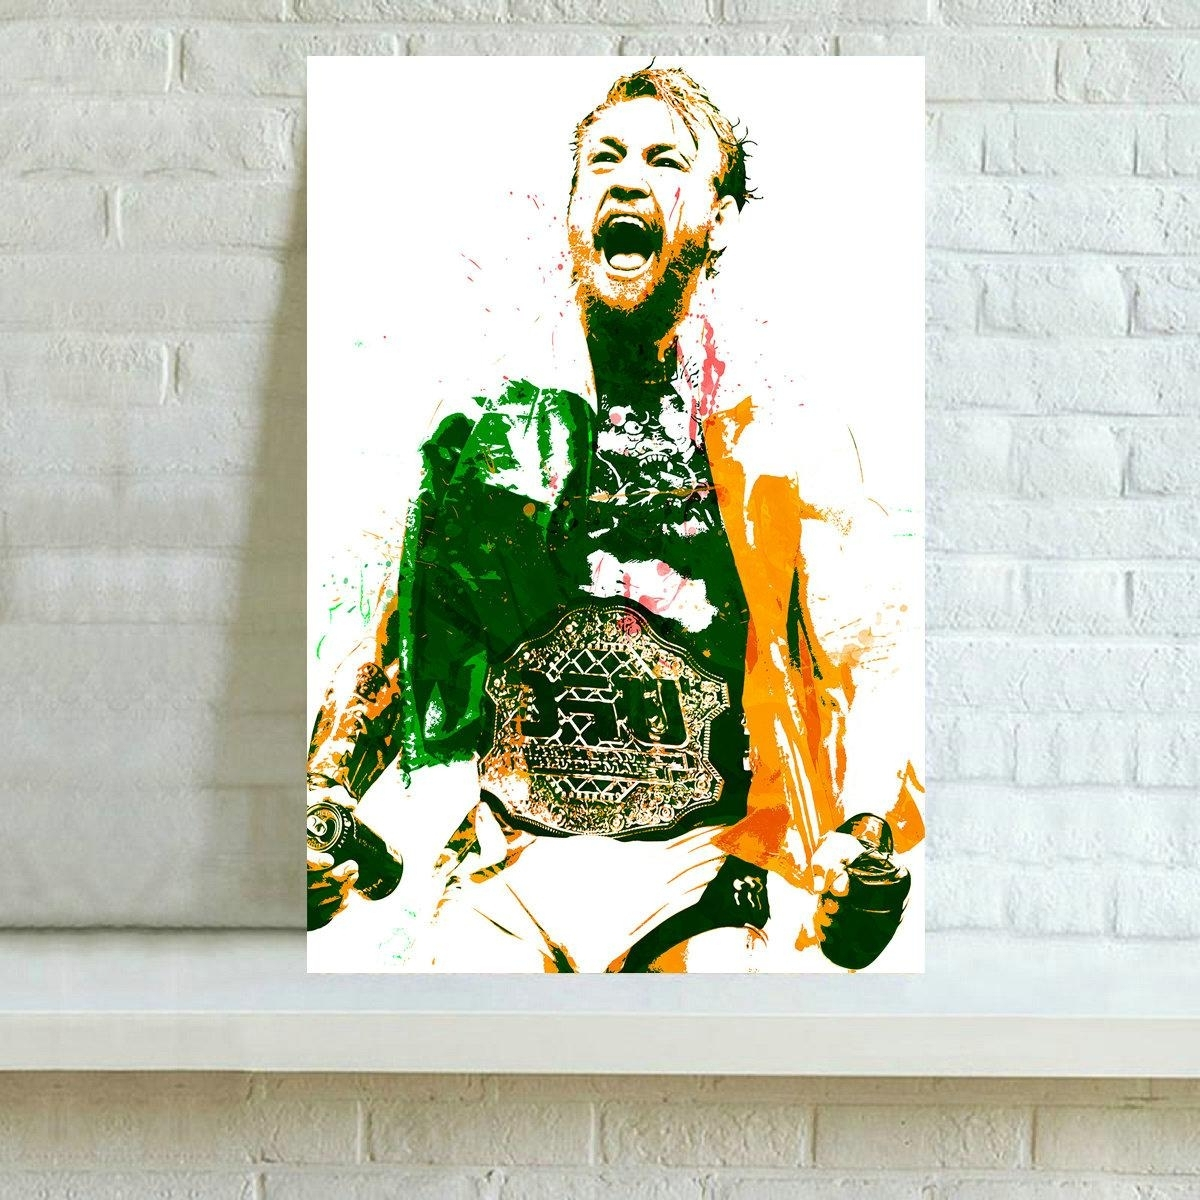 Sports Wall Art Regarding Latest 2018 Hd Printed Sports Art Oil Painting Home Decoration Wall Art On (View 14 of 15)